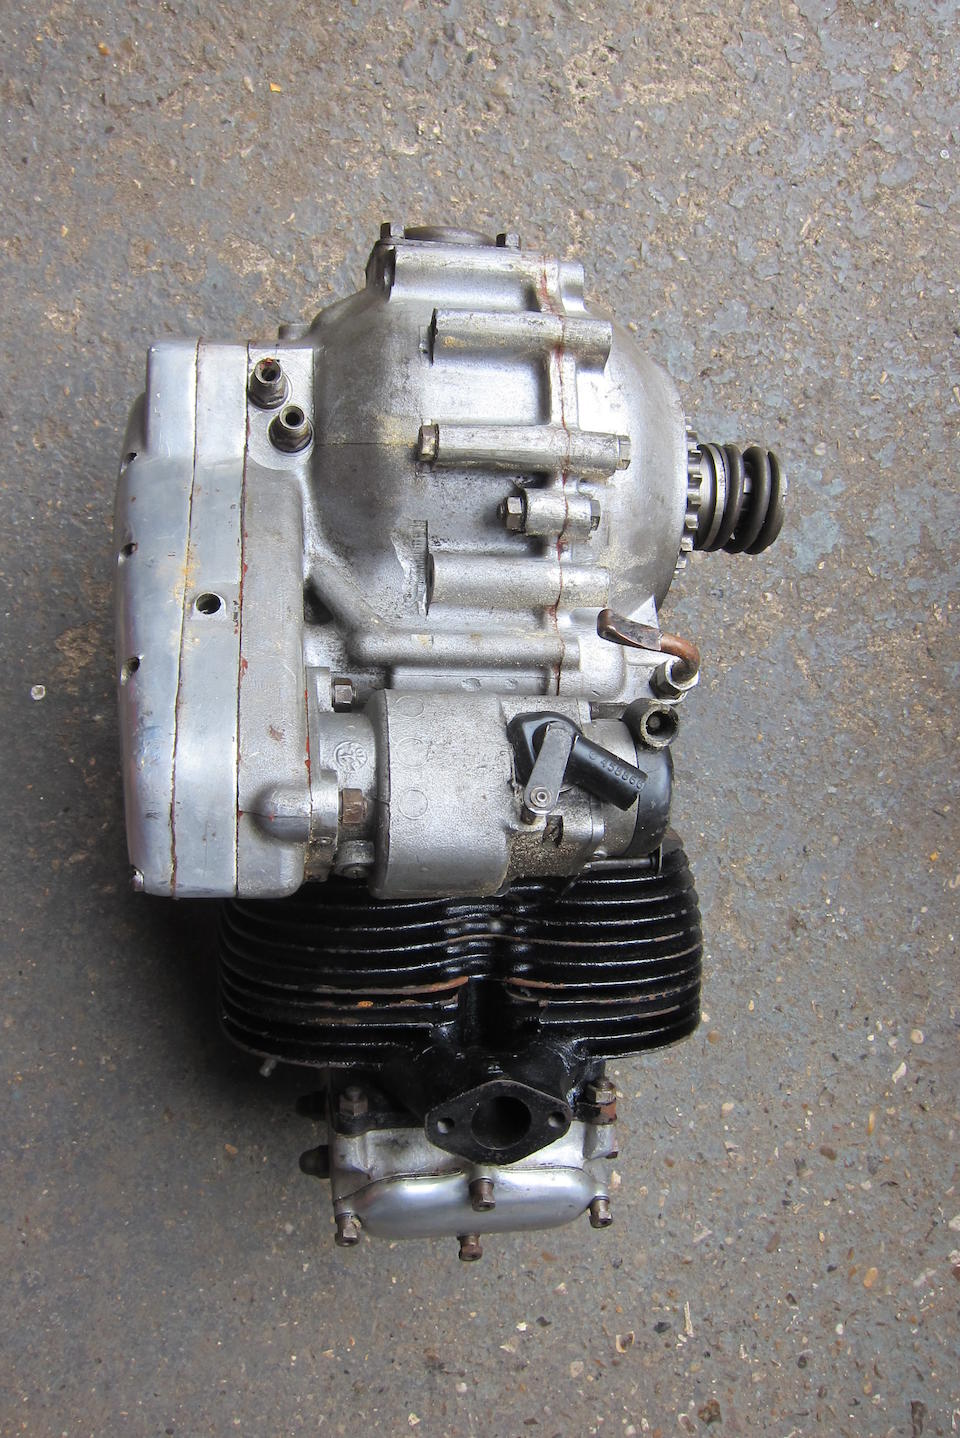 An Ariel 650 Twin cylinder engine